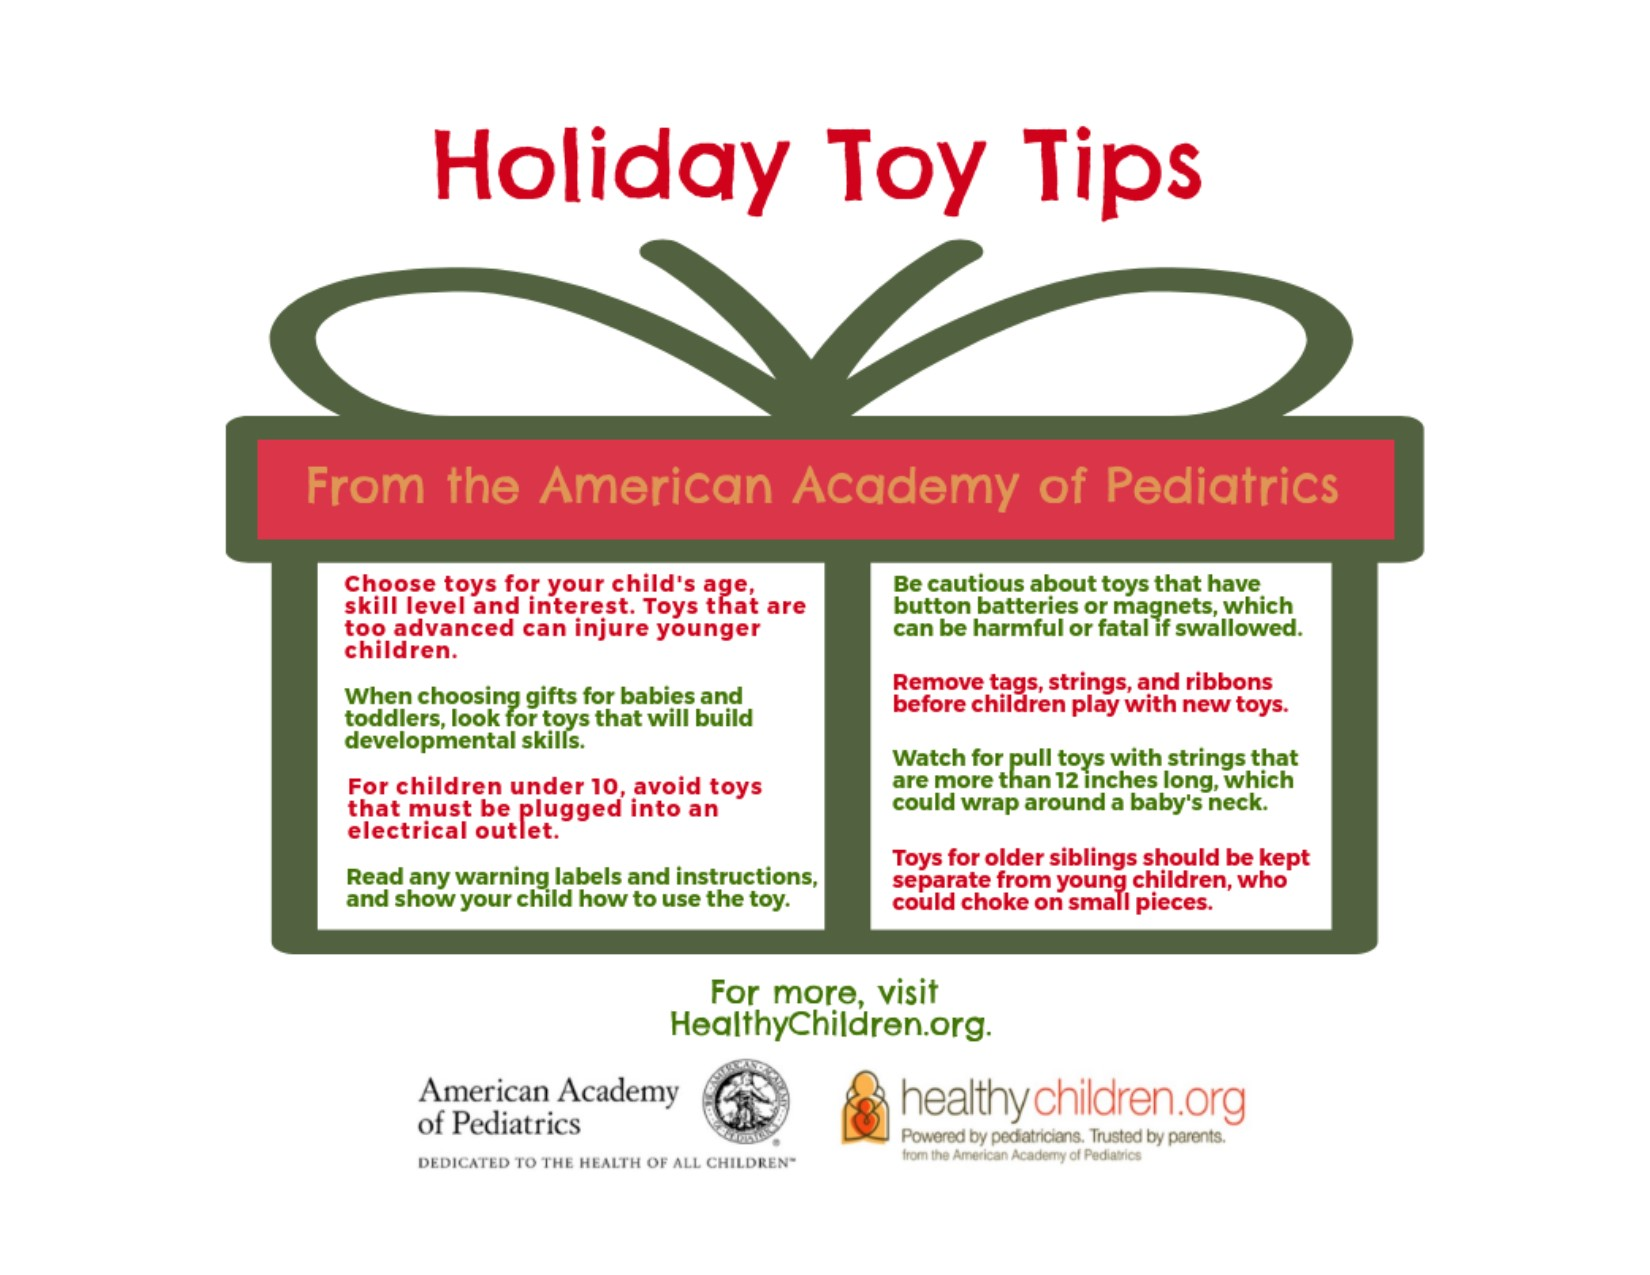 Toy Safety: Making Safe Choices This Holiday Season So Children Can Have Fun